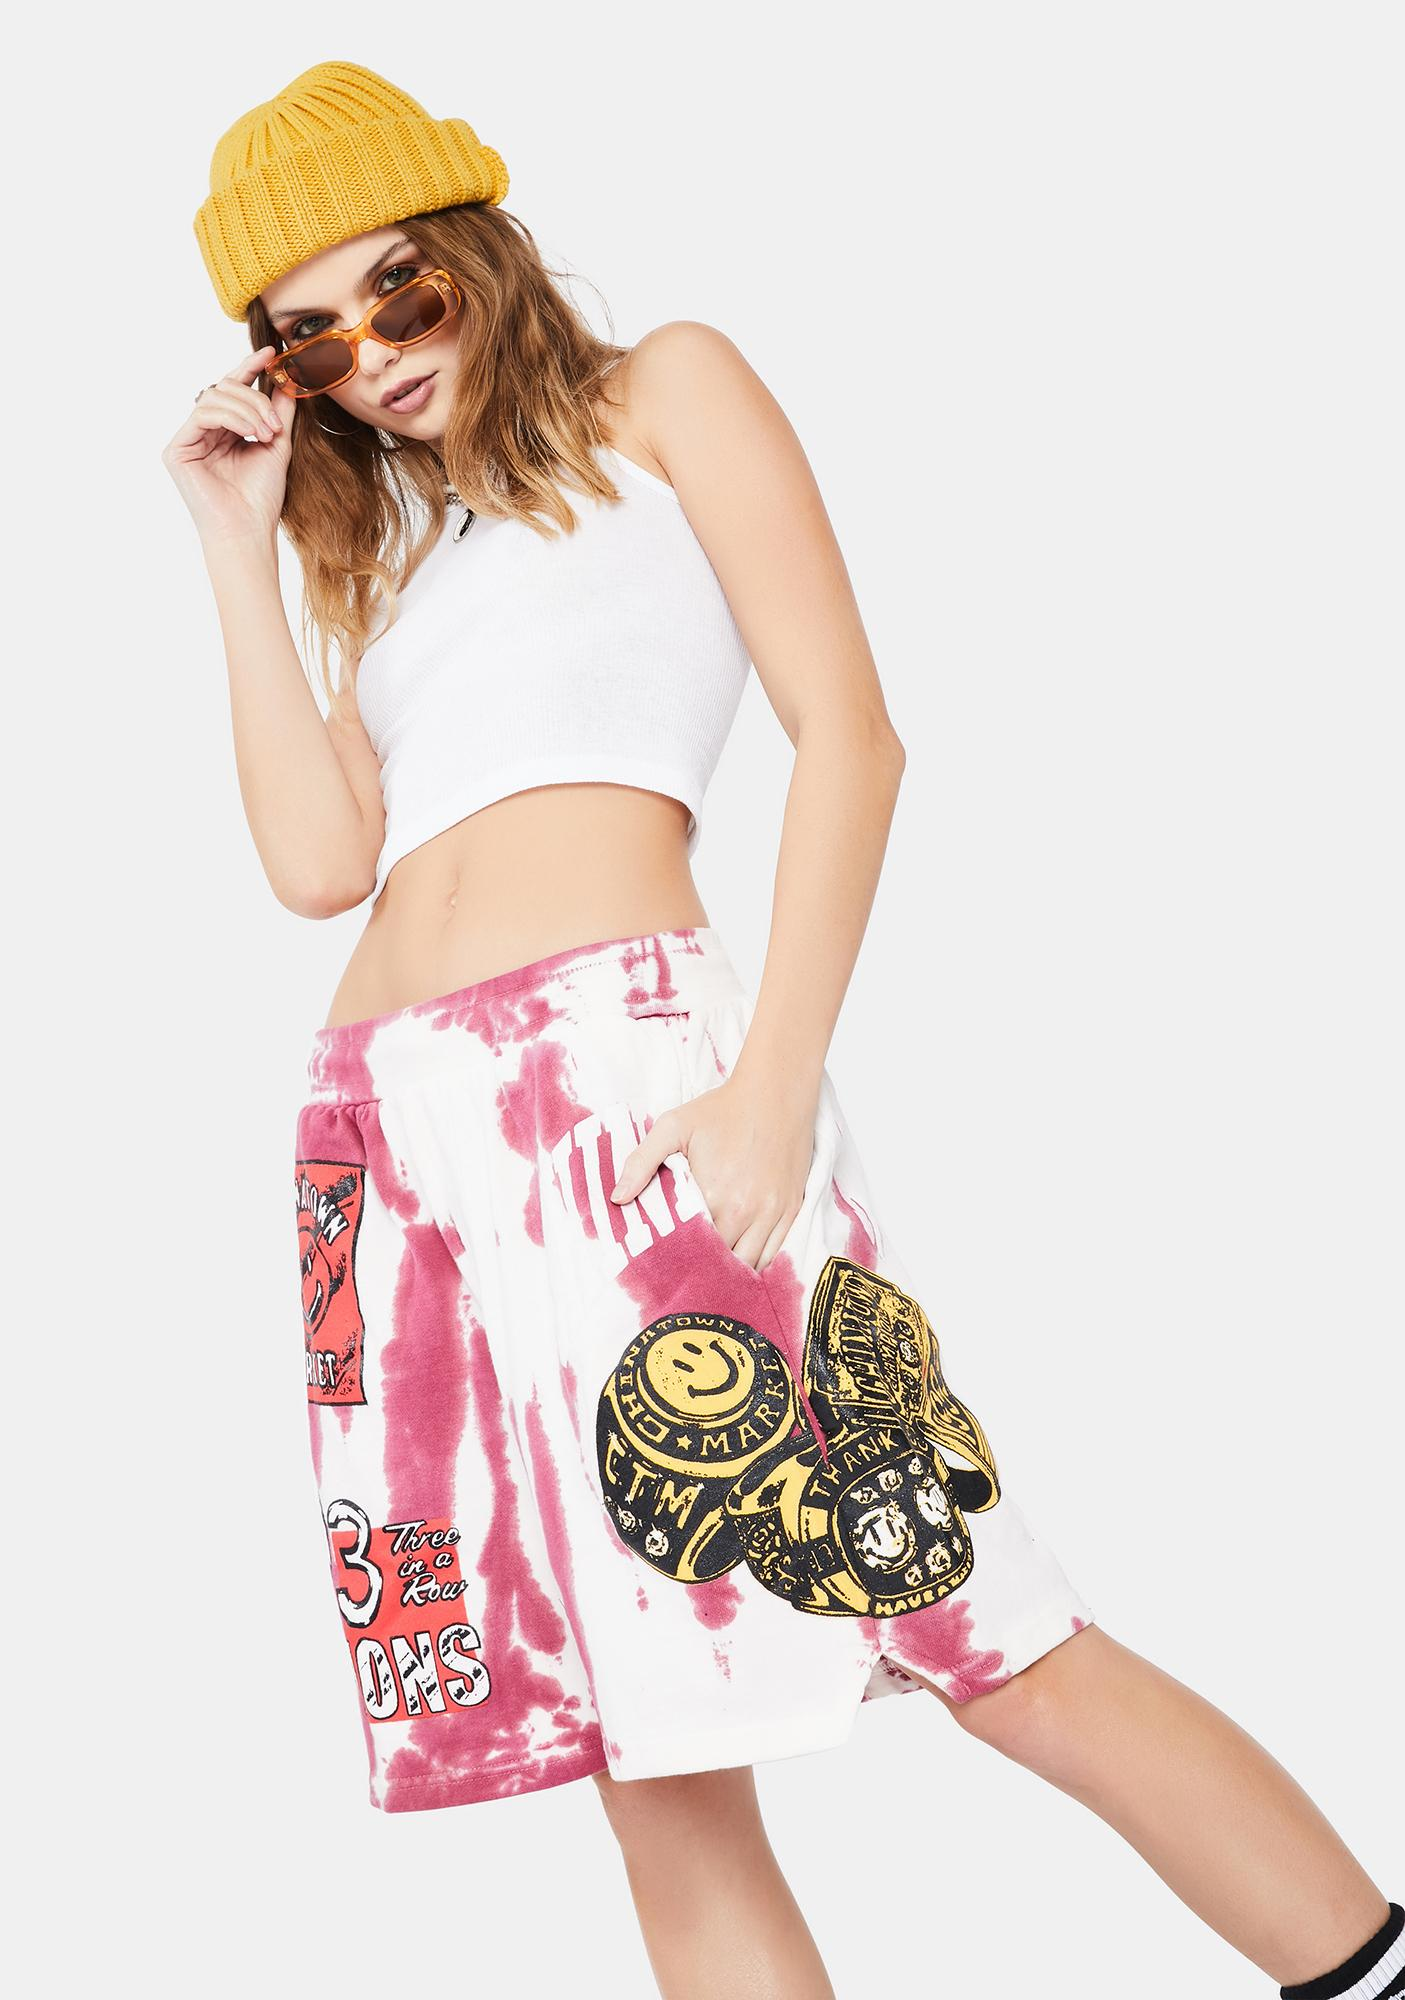 CHINATOWN MARKET Cherry Smiley Champion 3 Rings Shorts